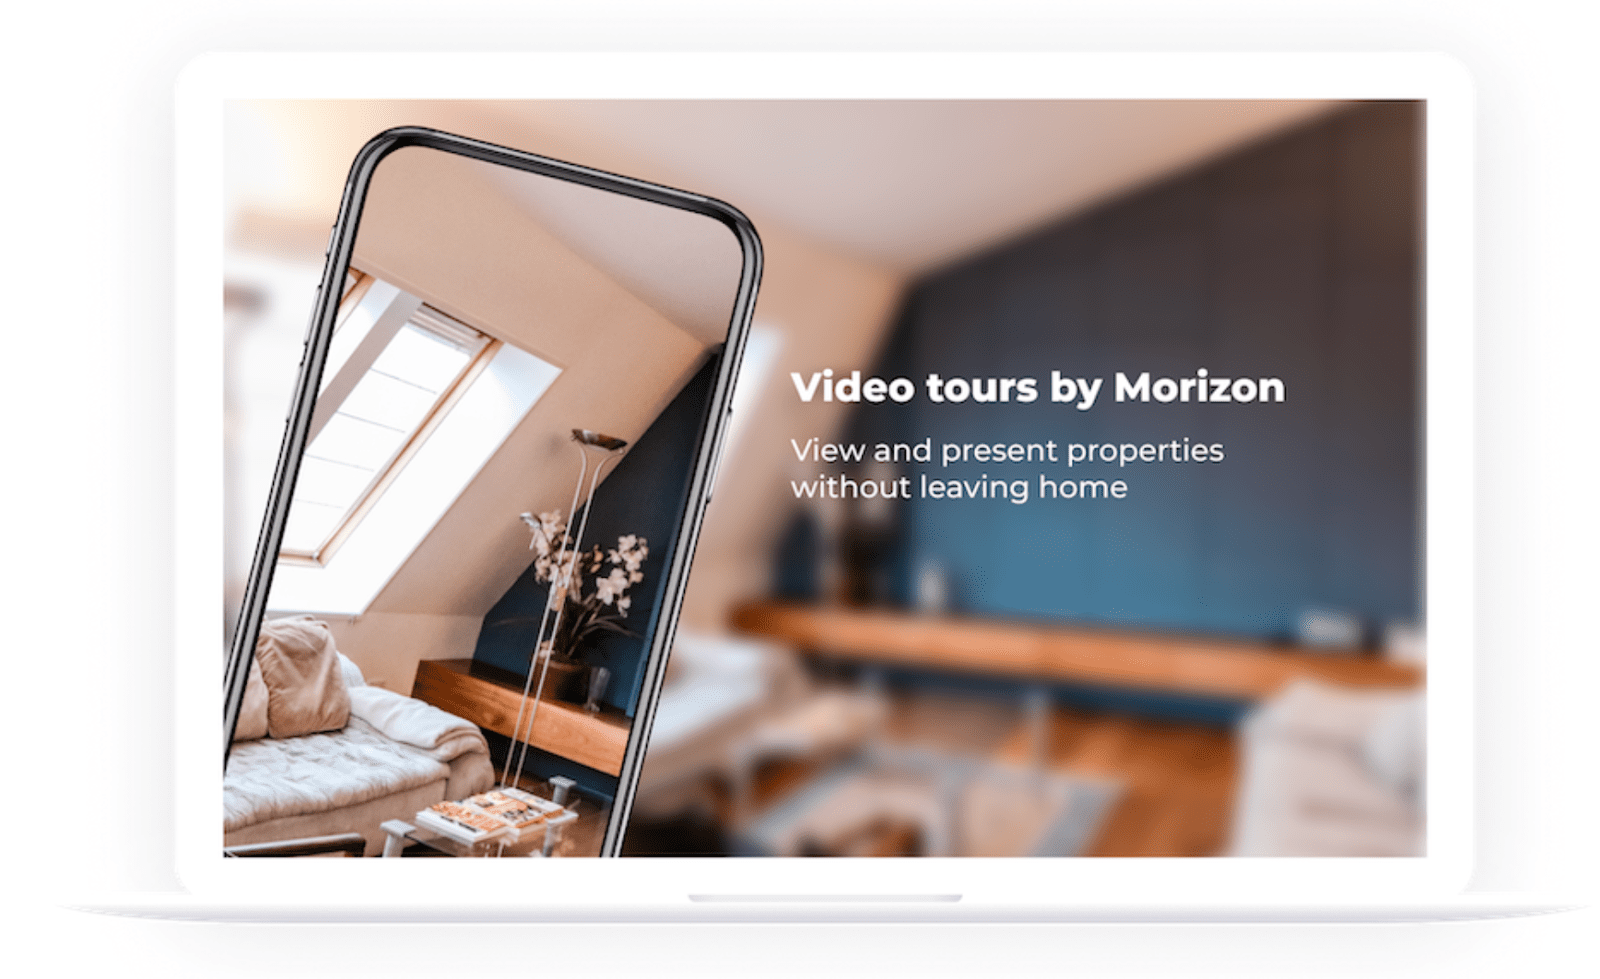 Video tours offered by Morizon